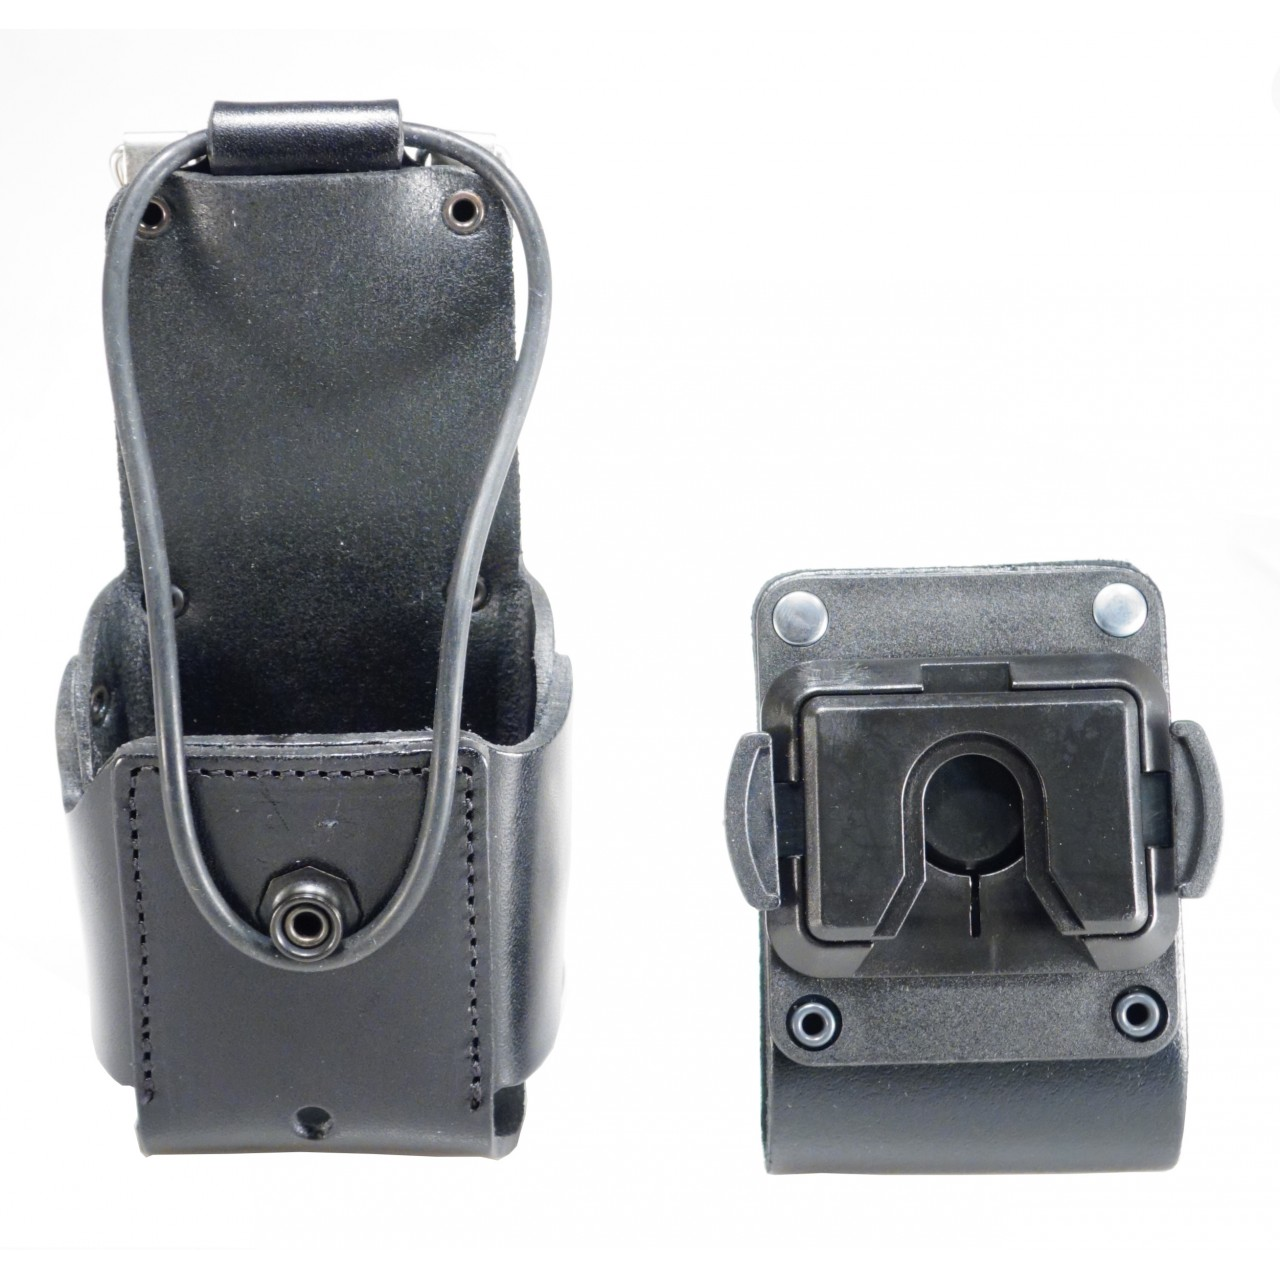 LC-ERFXX Covers, fasteners and cradles - ICOM